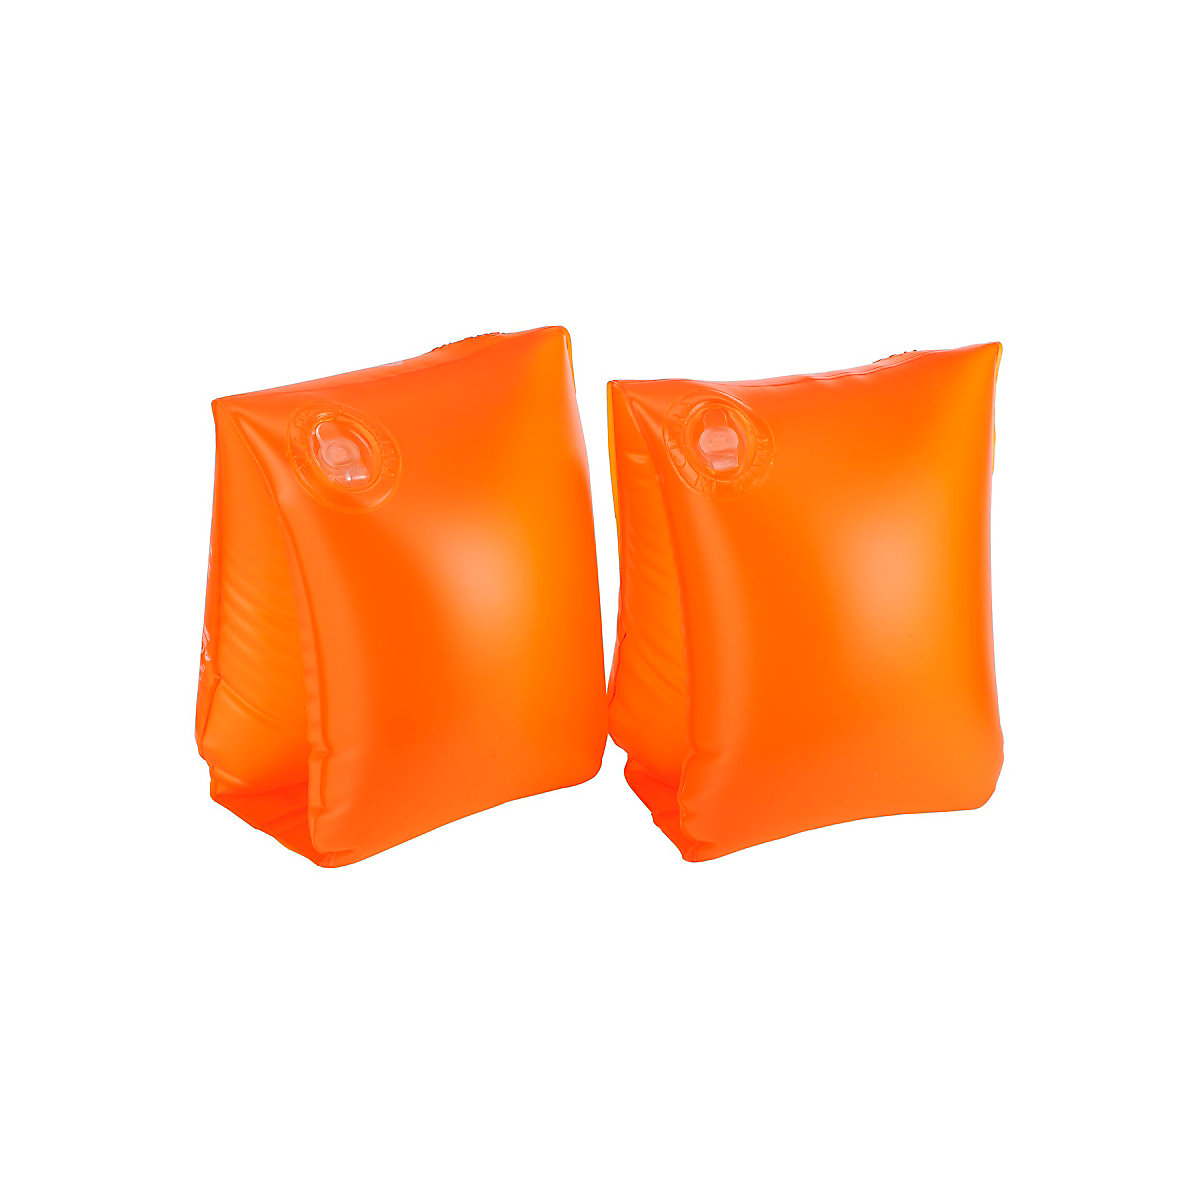 New ELC Boys and Girls Orange Armbands Toy From 12 months - Early Learning Centre Gifts